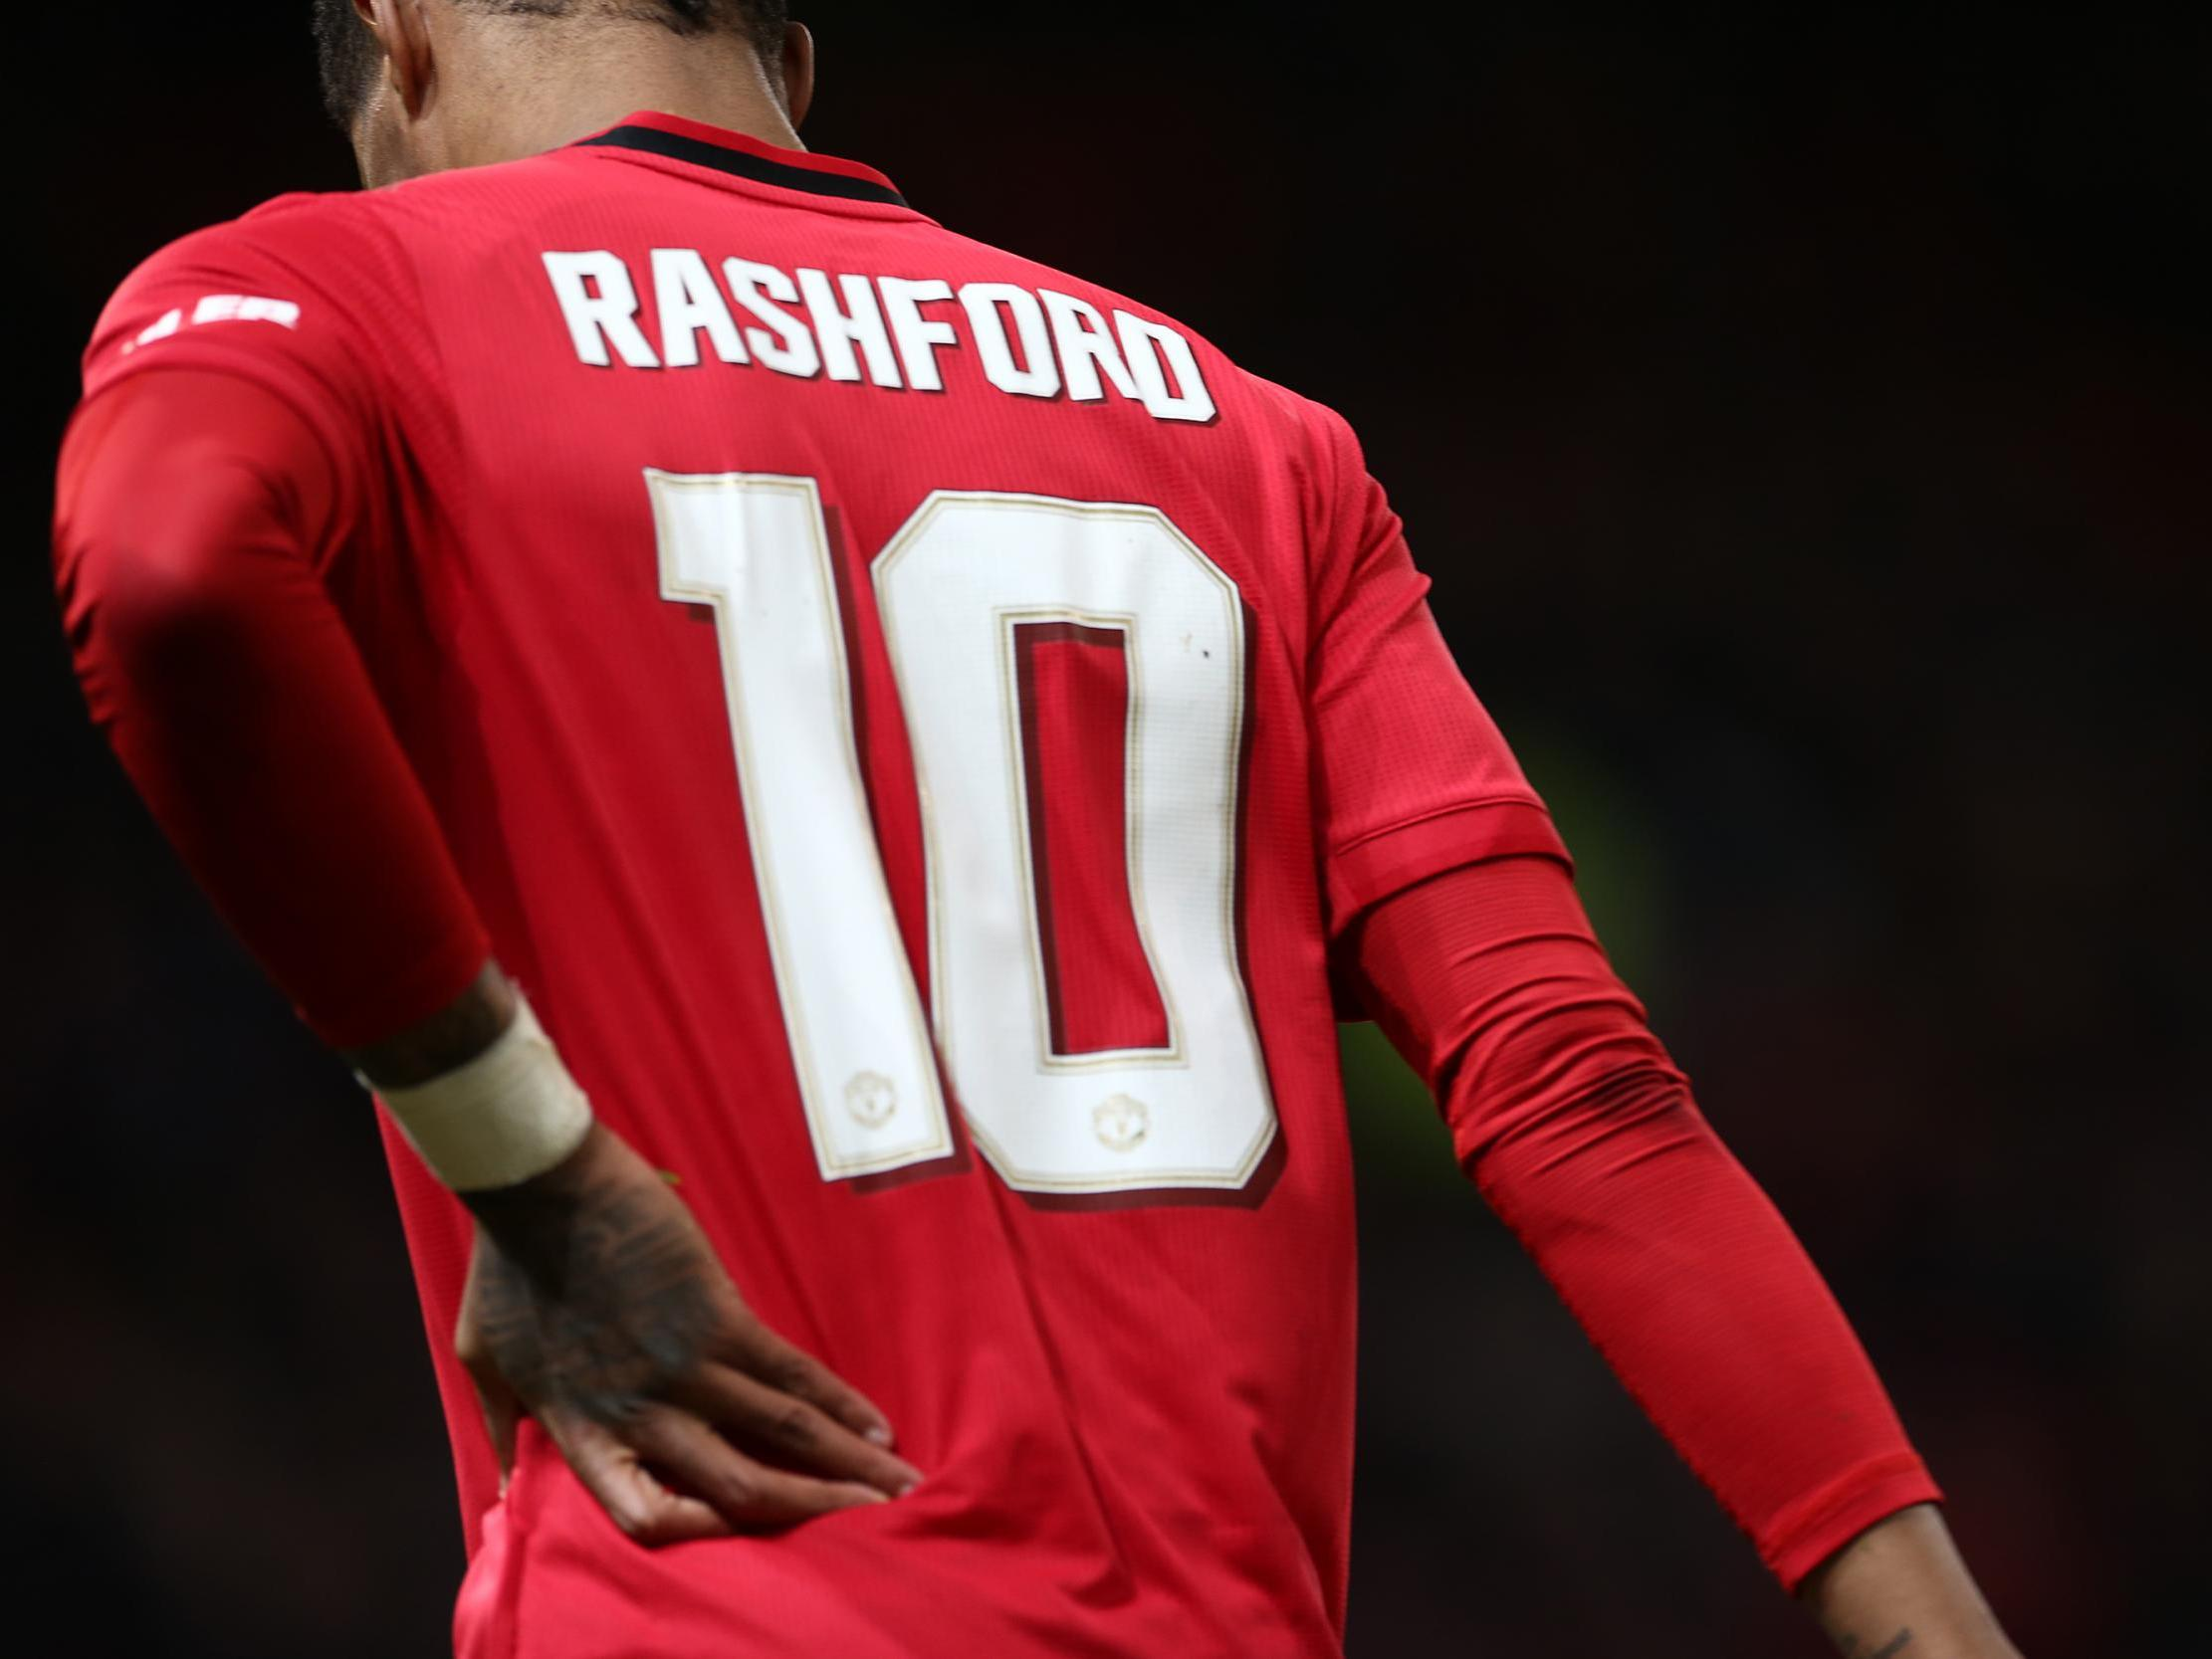 Marcus Rashford injury: Manchester United striker faces long lay-off as back problem worse than first feared